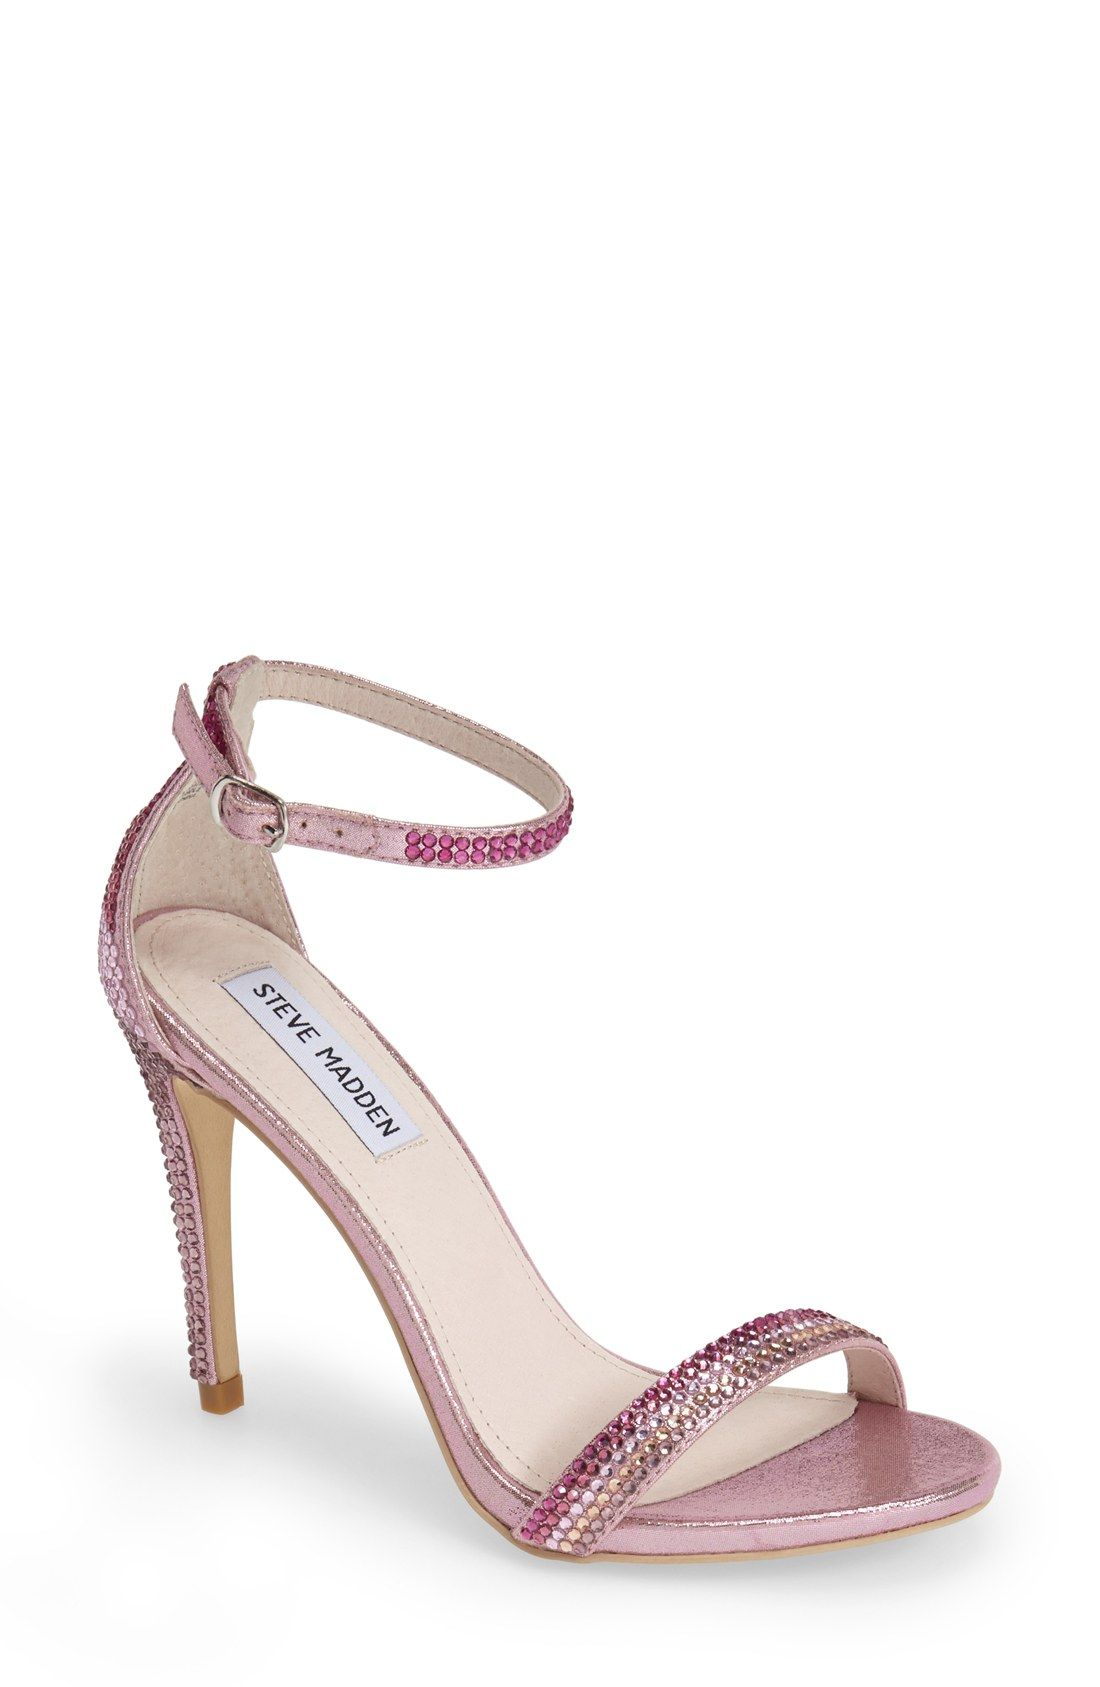 47ae692e7 Swooning over these glitzy pink Steve Madden sandals.   Women's ...